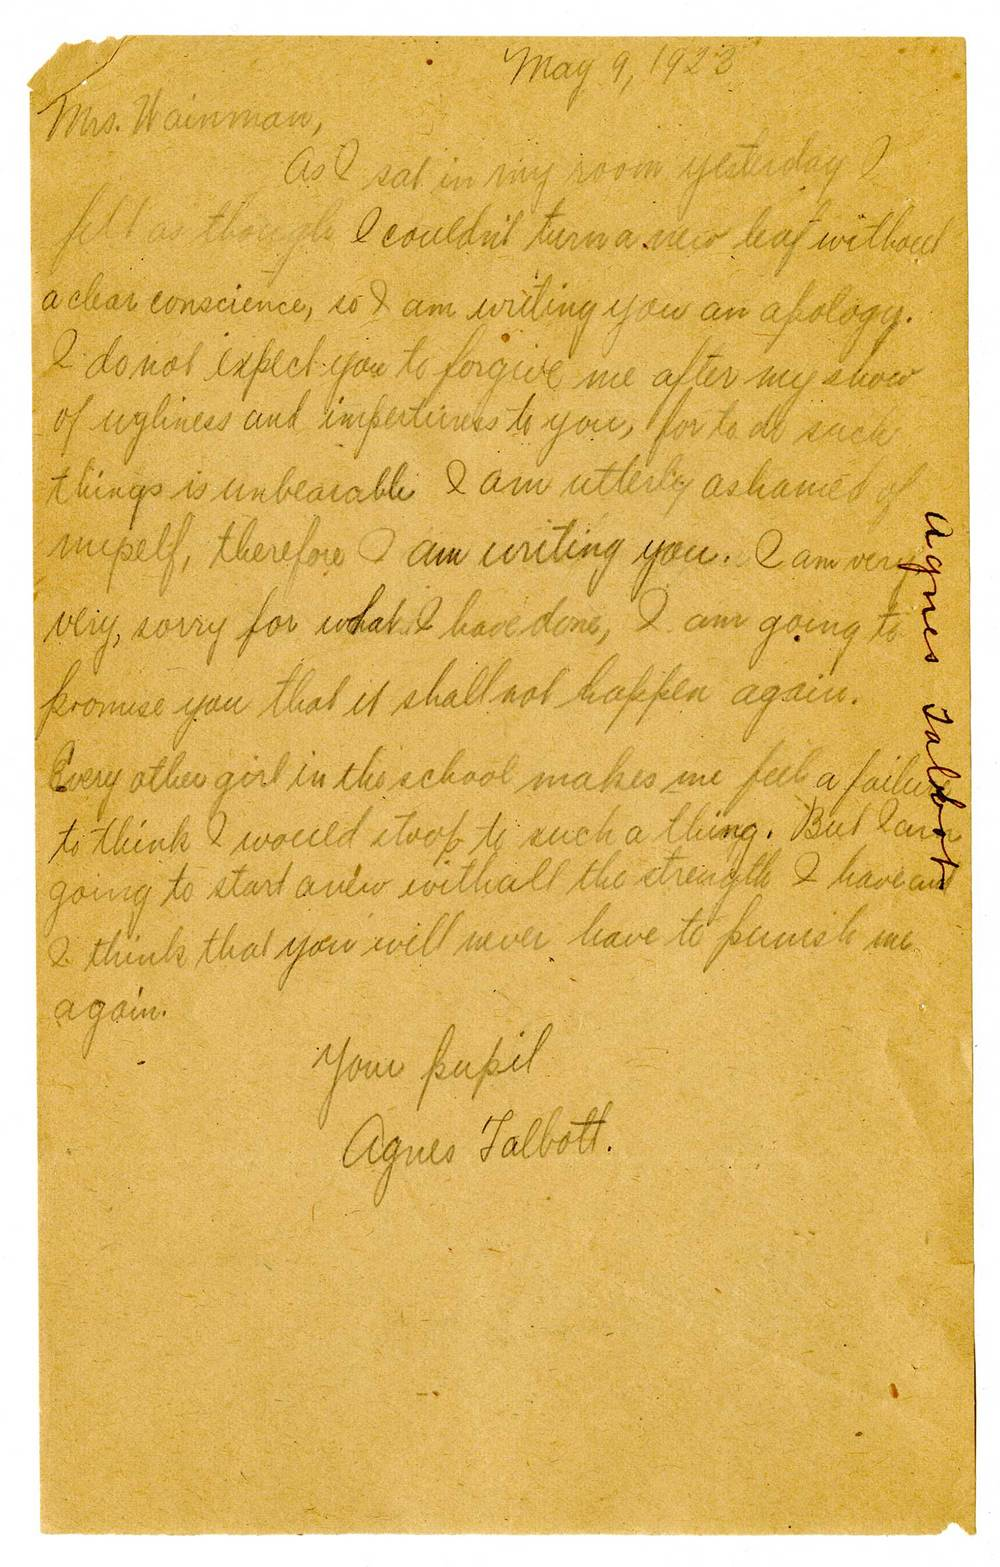 Correspondence from Agnes Talbott, NY State Training School for Girls, Hudson, NY (May 9, 1923)